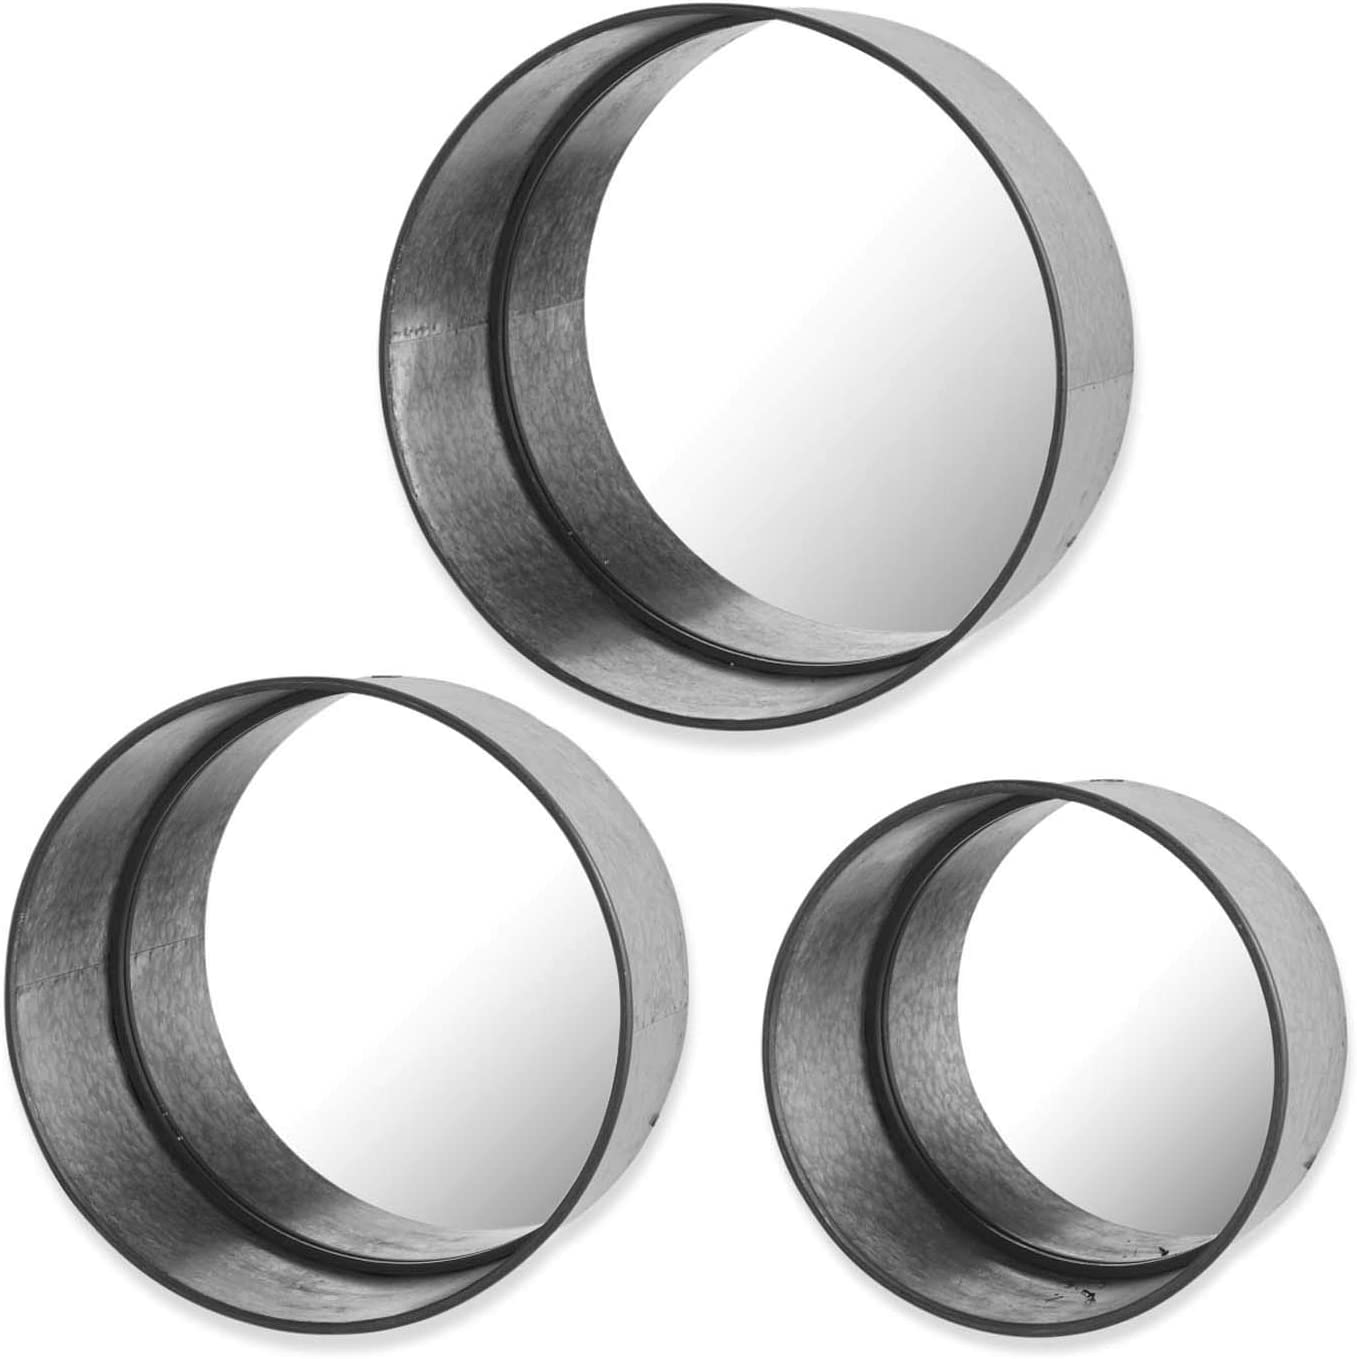 High order KK Interiors 13805A Set of Round National products Metal Mirrors 3